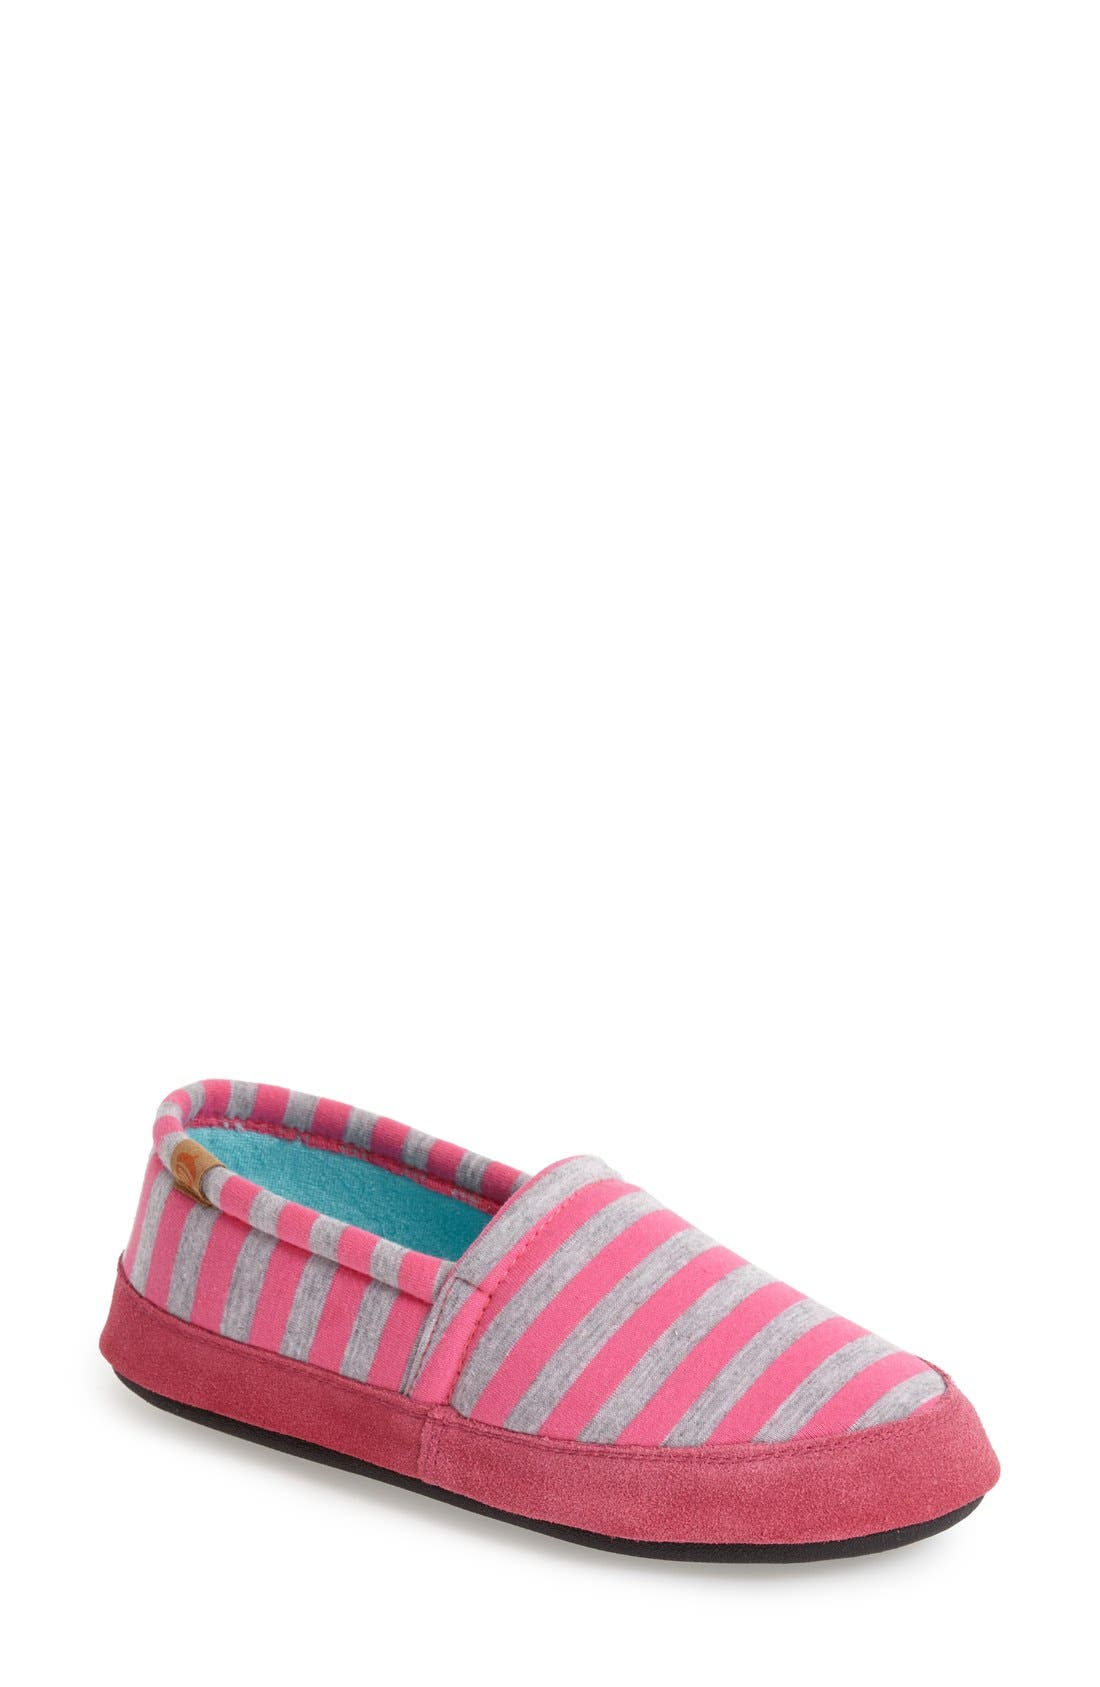 Acorn Summer Weight Moc Slipper (Women)